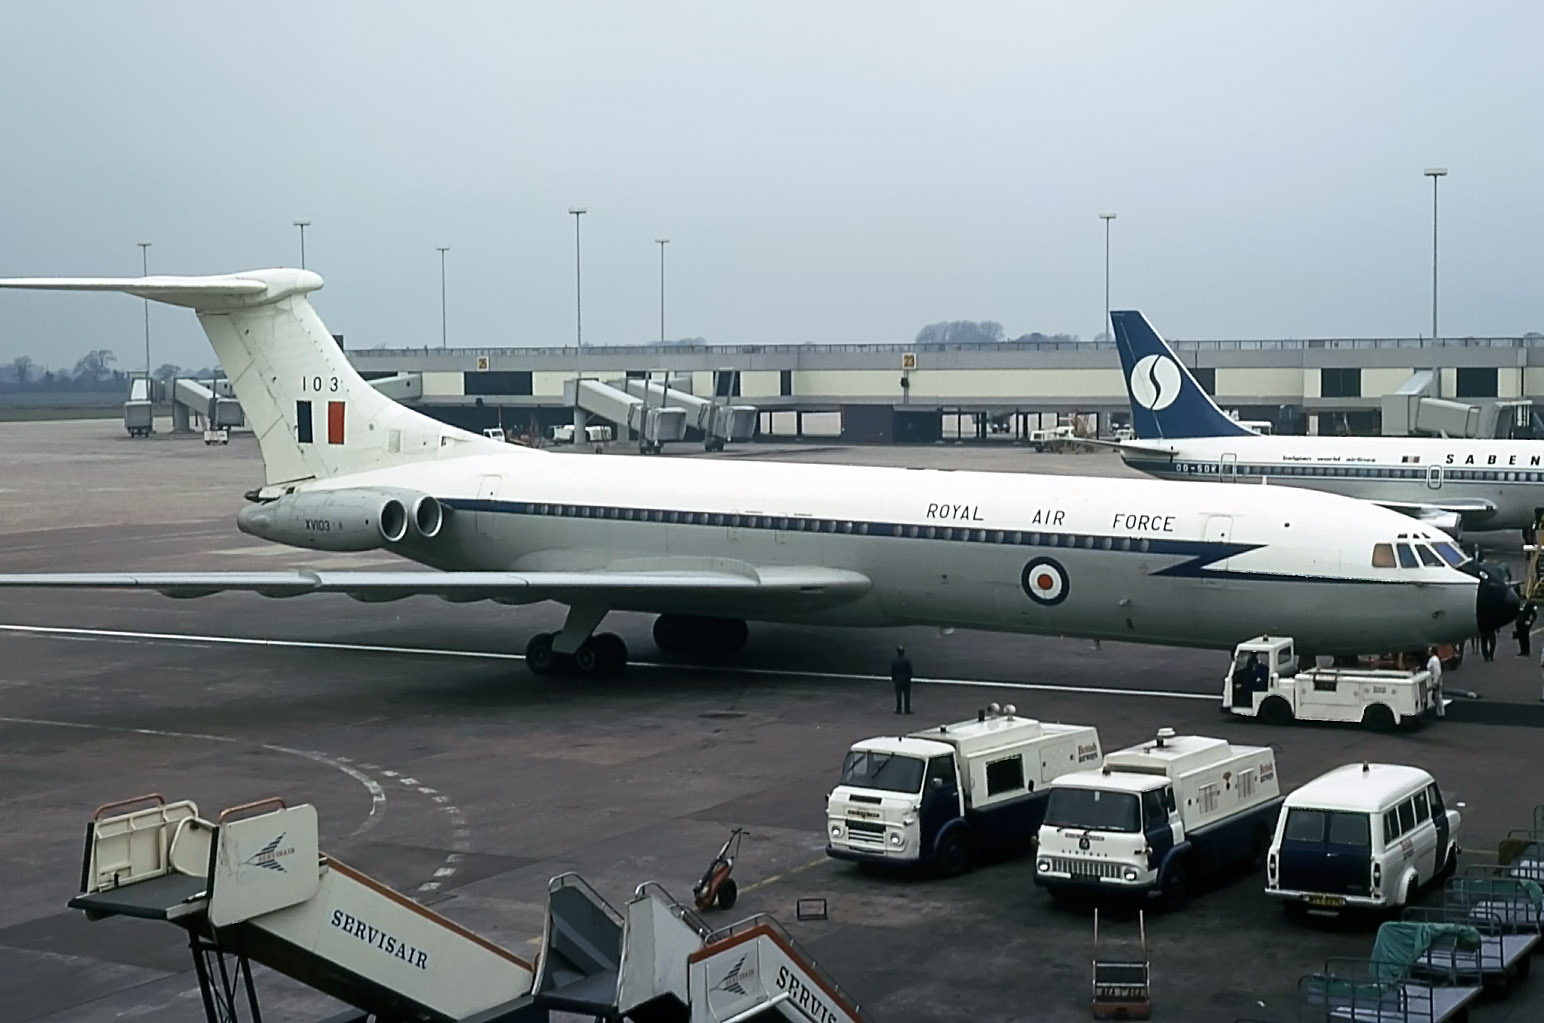 Always good to see and hear a VC10!! The Royal Air Force paid us a visit on 16th April 1975 with XV103.Photo: Peter H